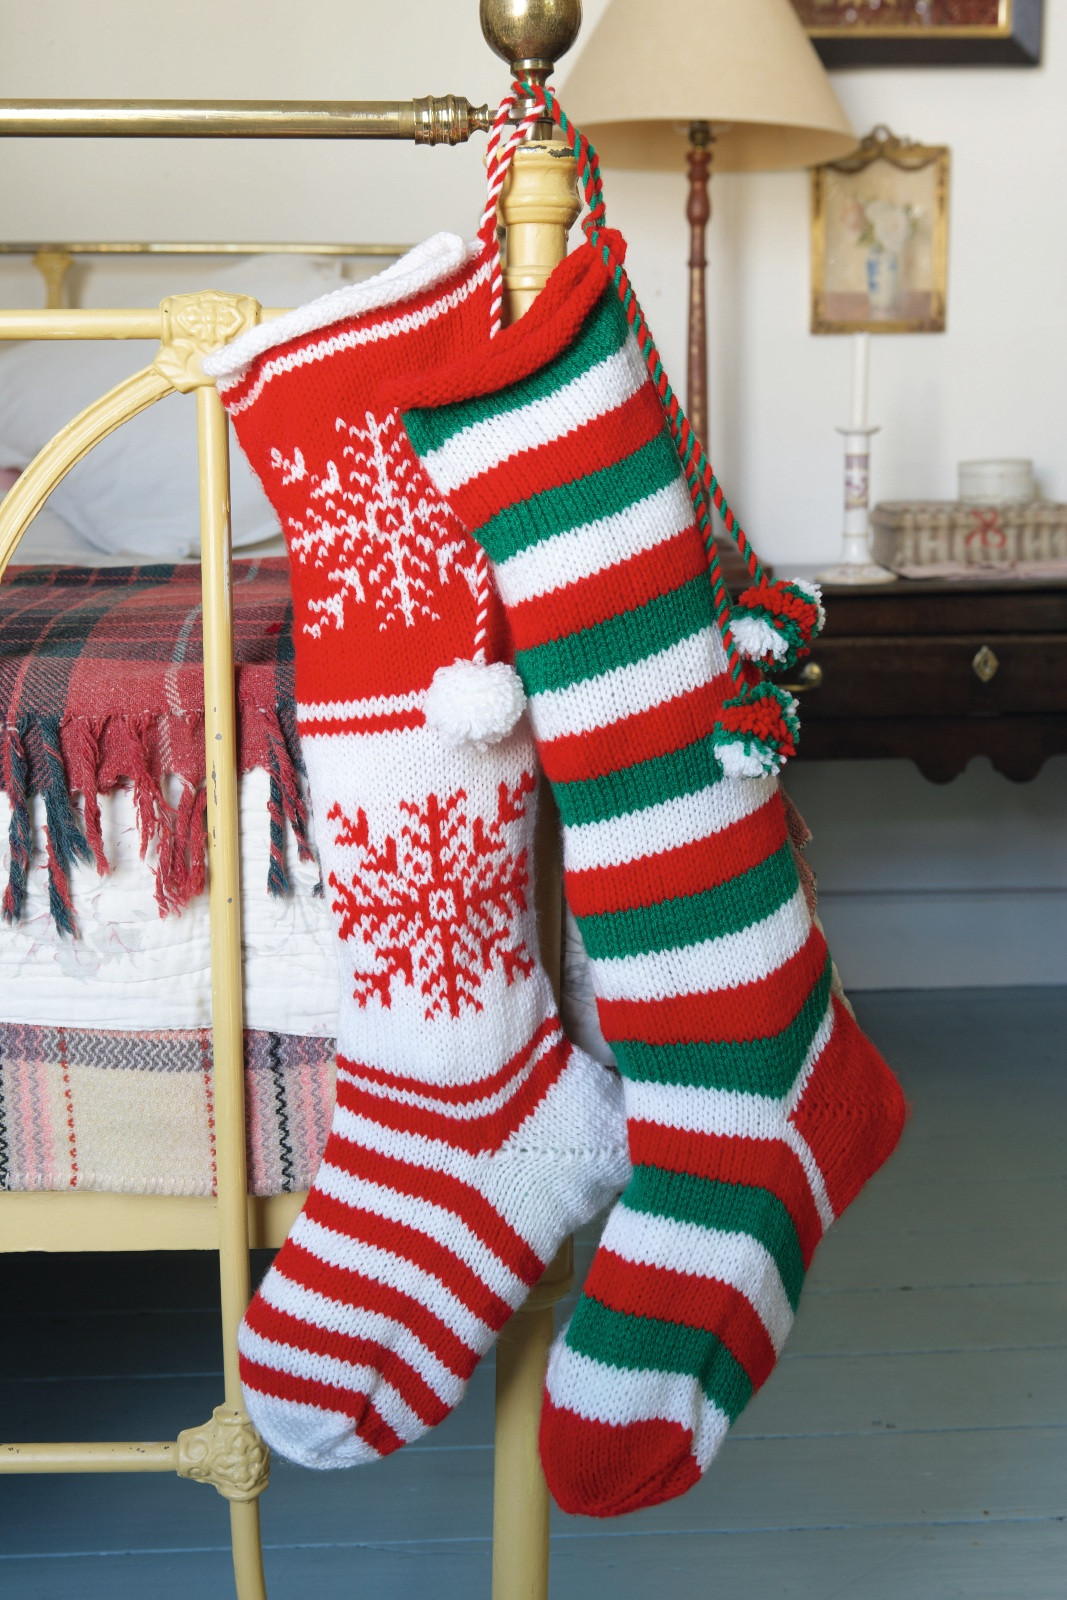 Christmas Stocking Knitting Pattern New How to Knit A Christmas Stocking Hobbycraft Blog Of Marvelous 40 Pictures Christmas Stocking Knitting Pattern